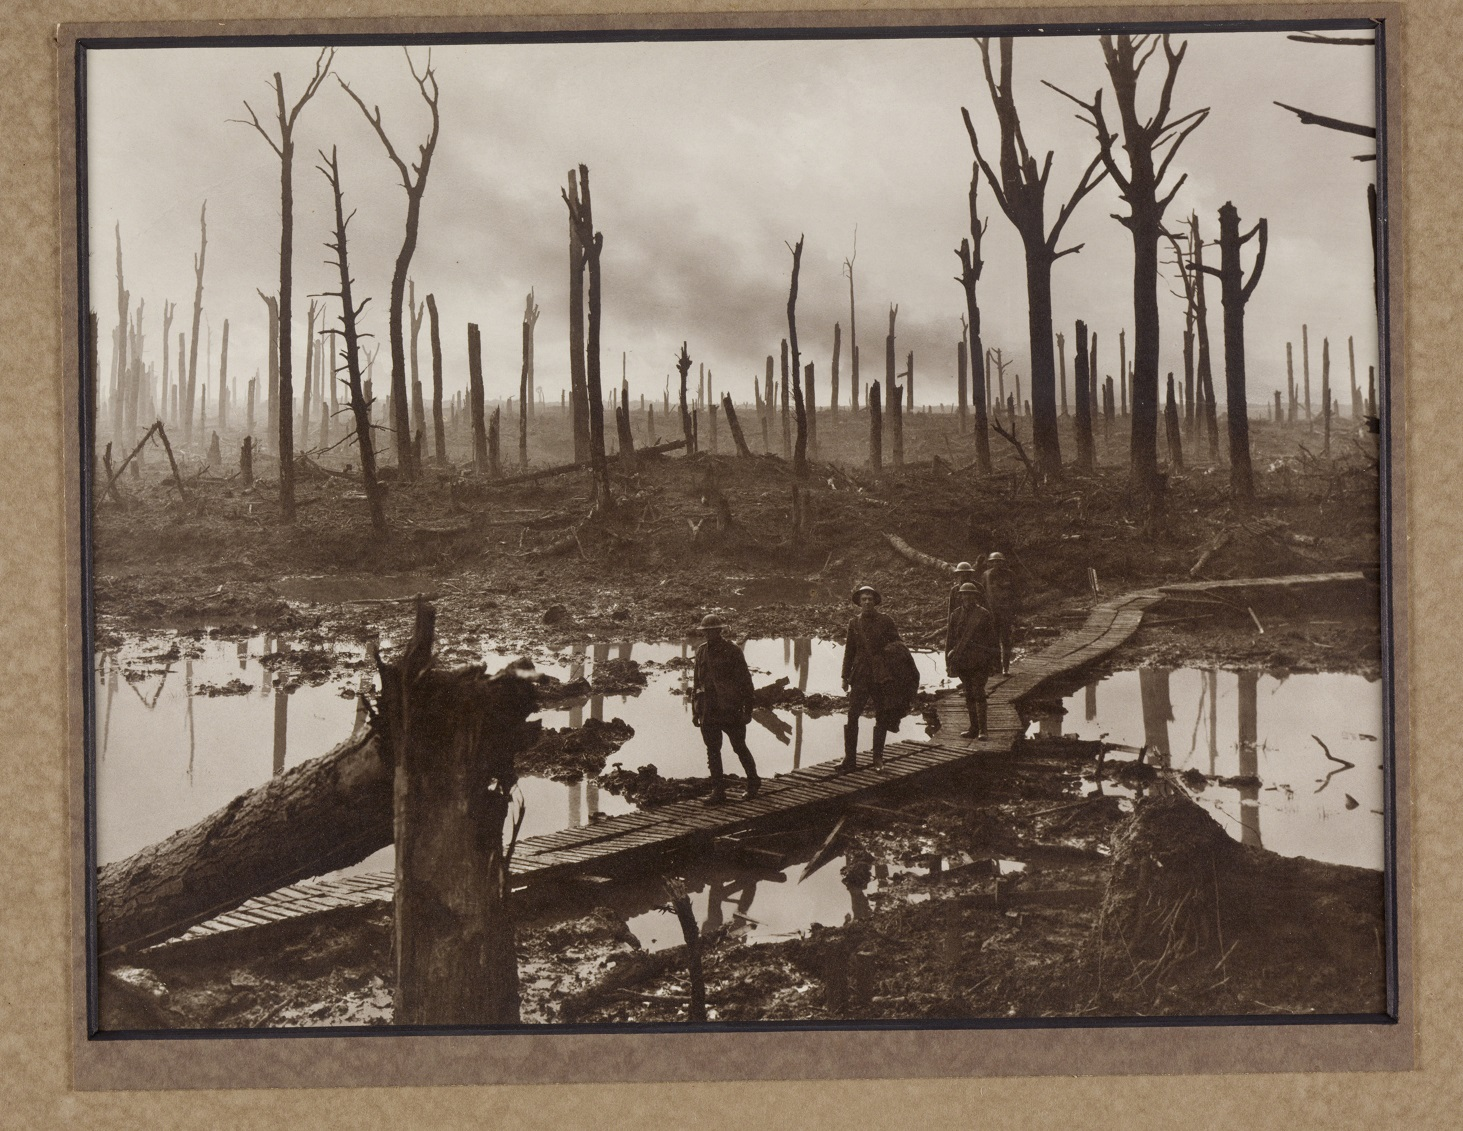 The shell shattered areas of Chateau Wood, 1917.